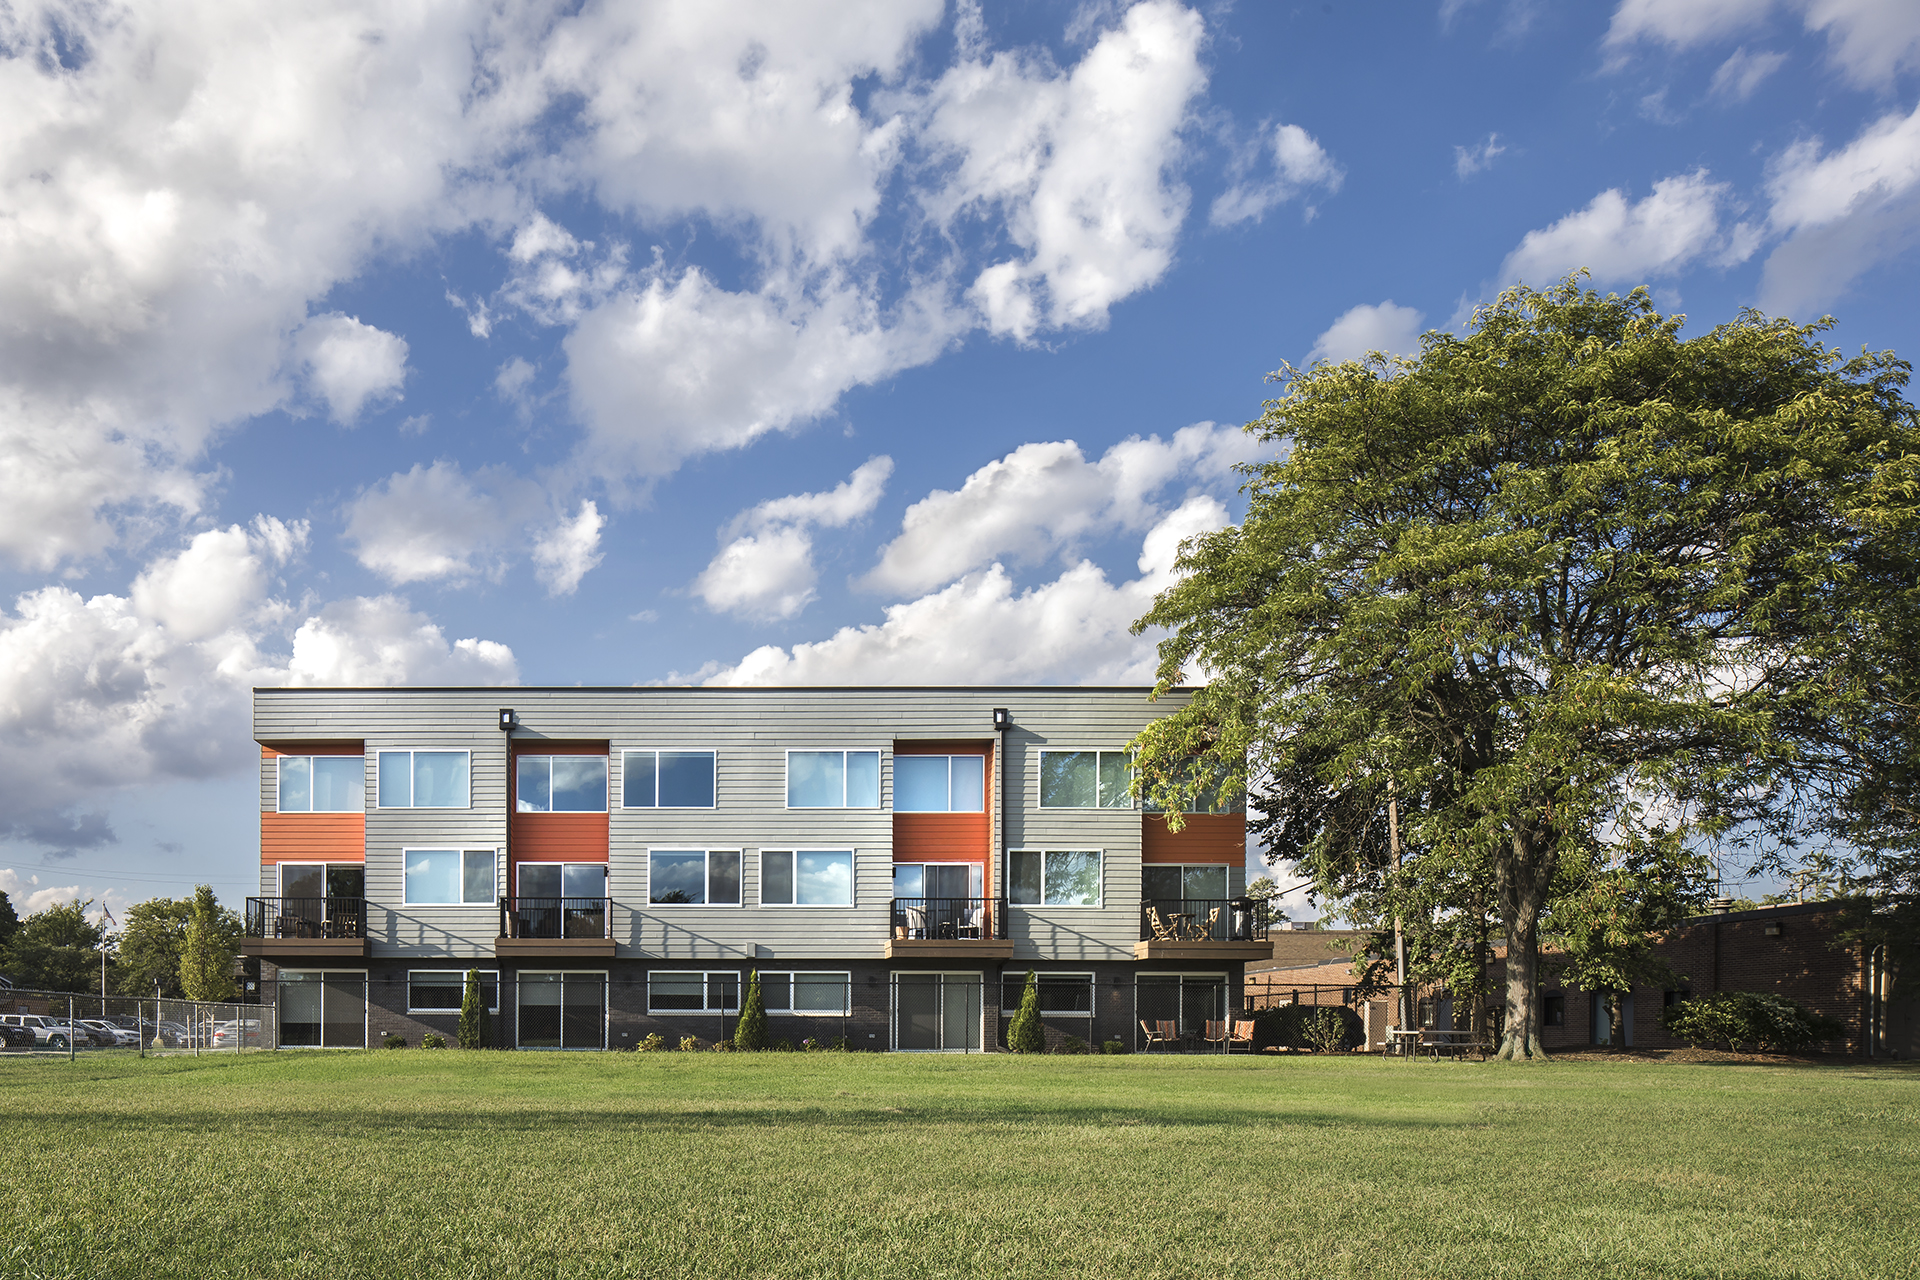 DESIGN FOR THE MIDDLE CLASS AT PARKSIDE LOFTS